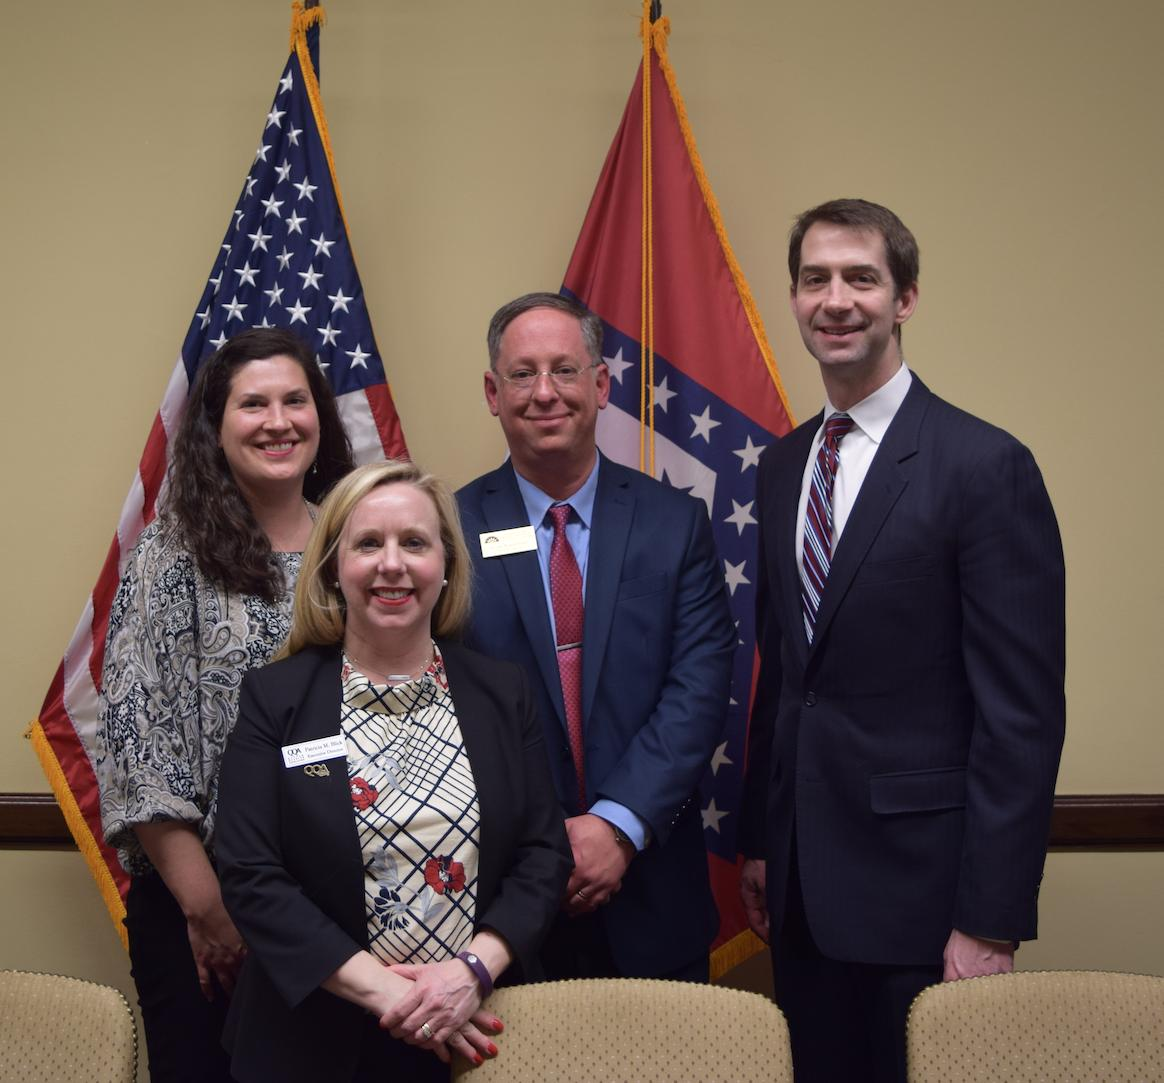 This week I had the pleasure of meeting with @PreserveAR to discuss solutions to maintain our beautiful Arkansas national parks.